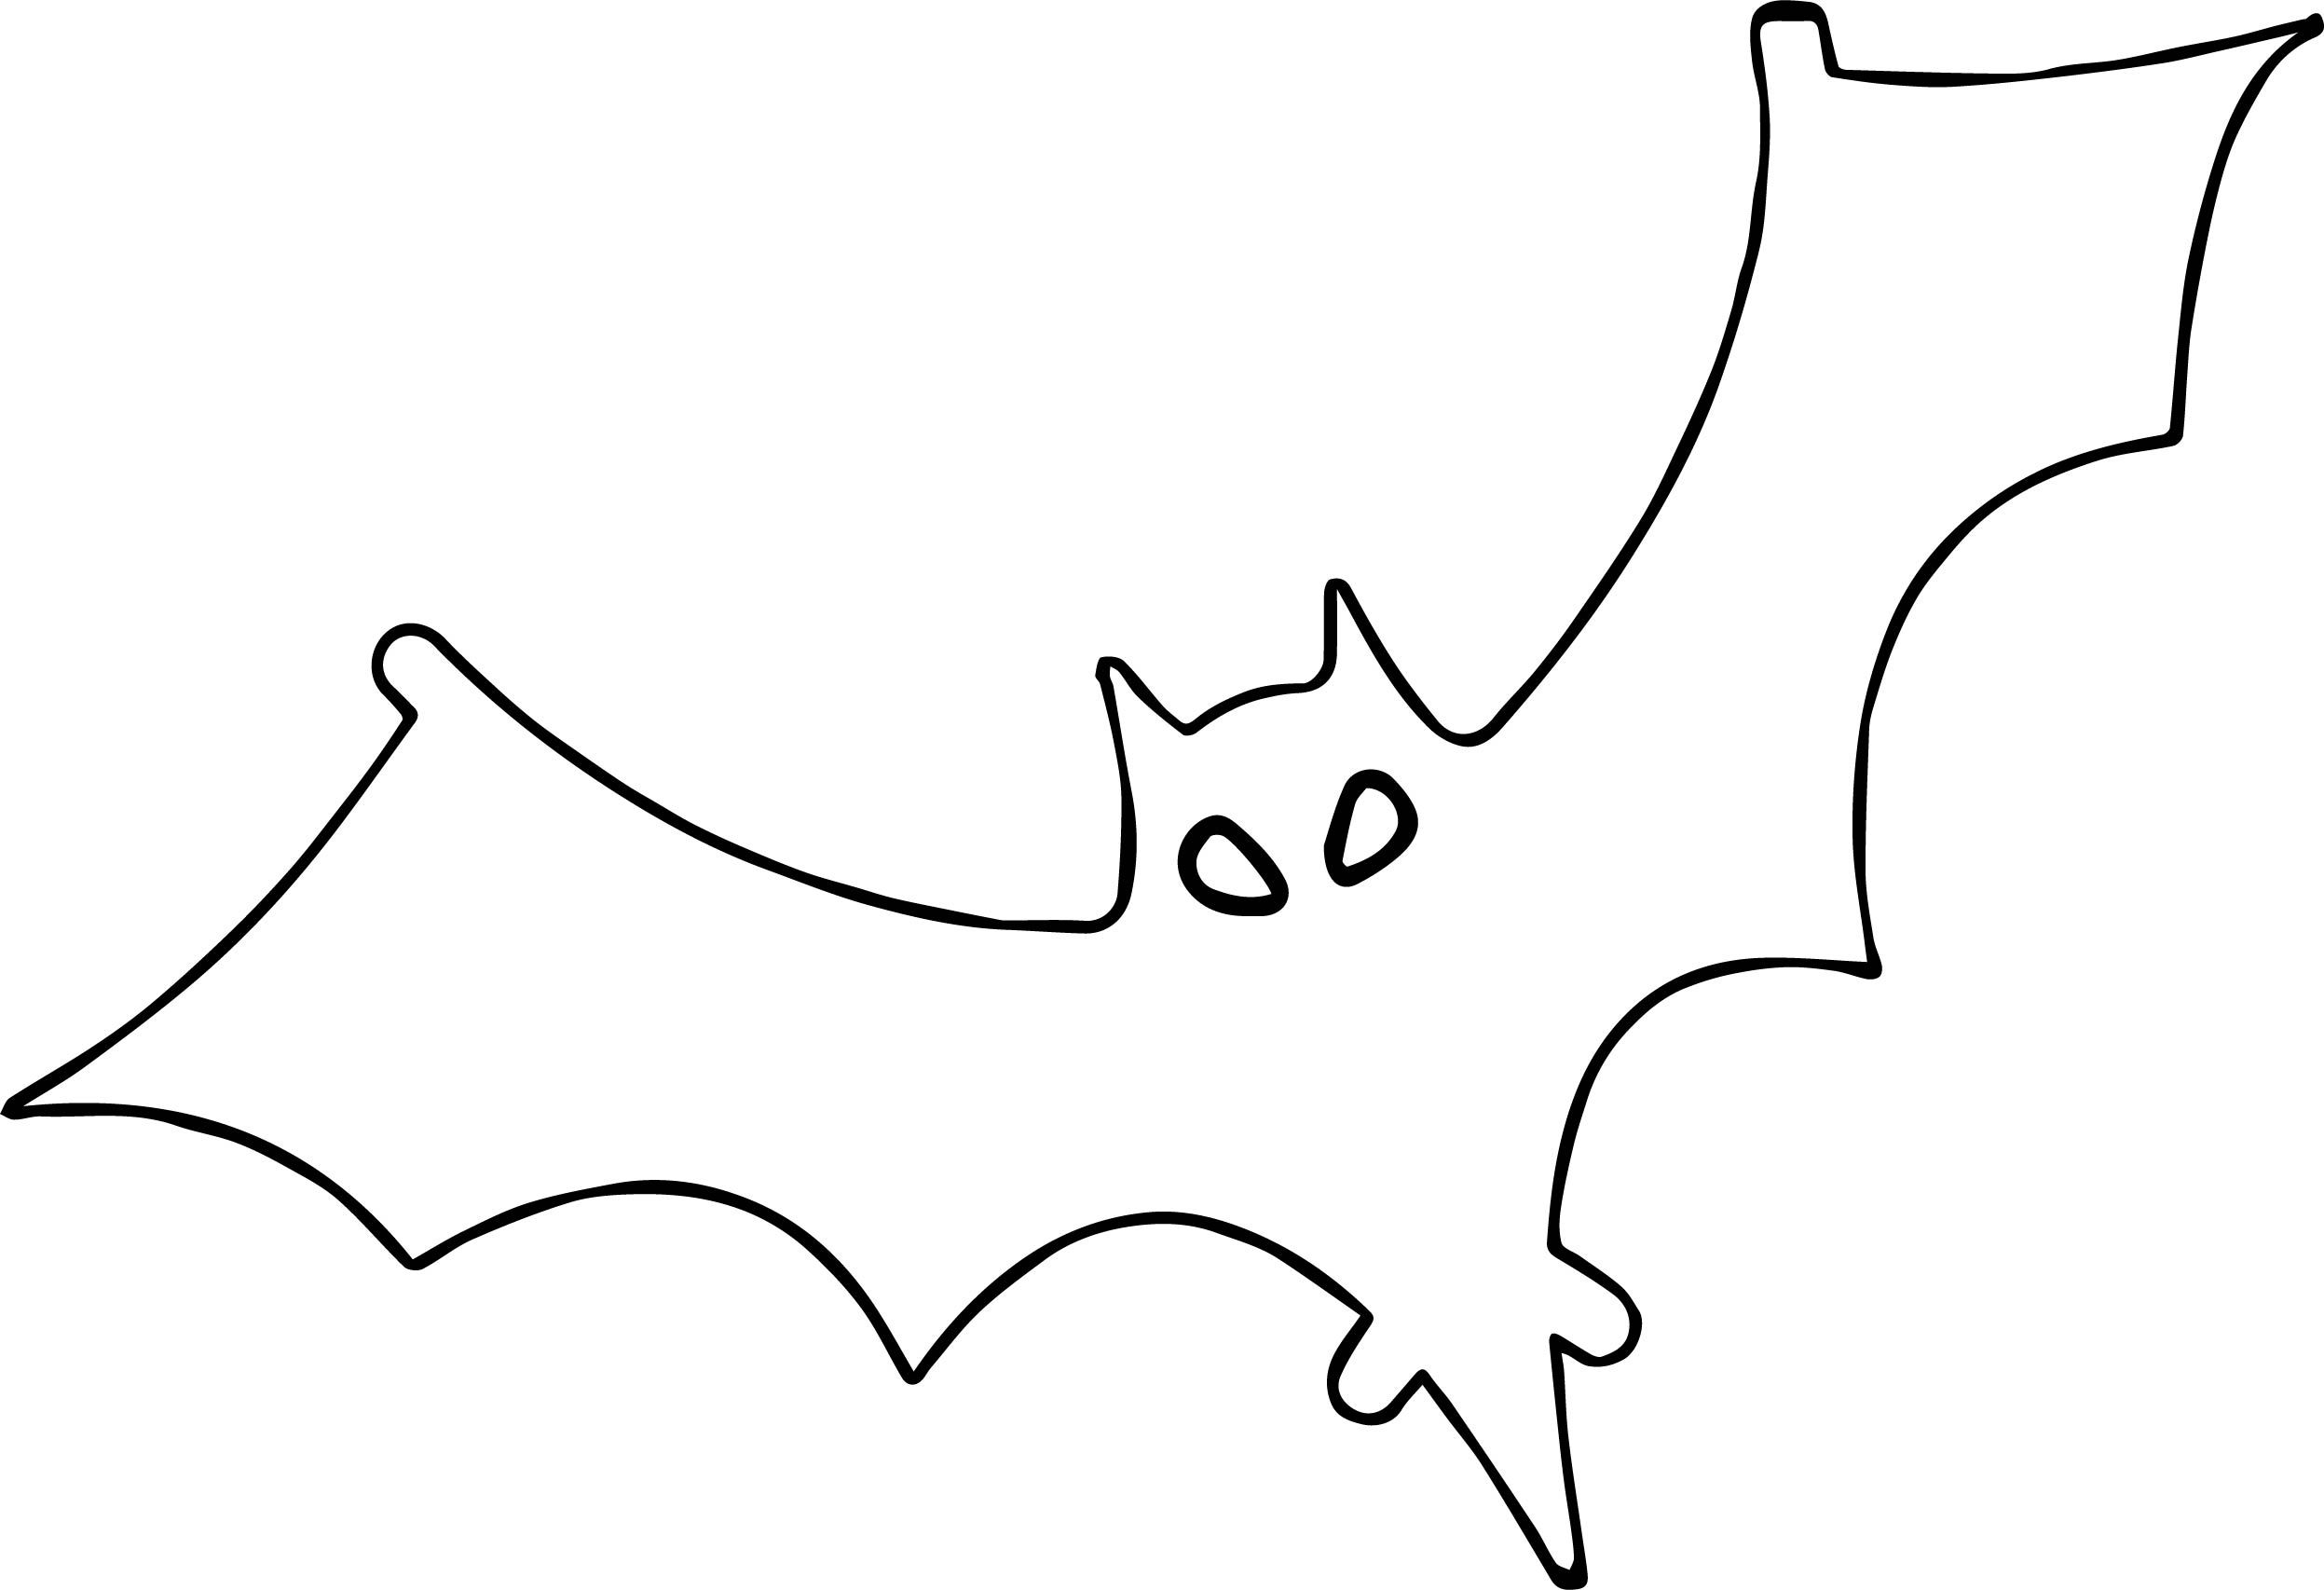 cool Outline Bat Coloring Page | wecoloringpage | Pinterest | Outlines